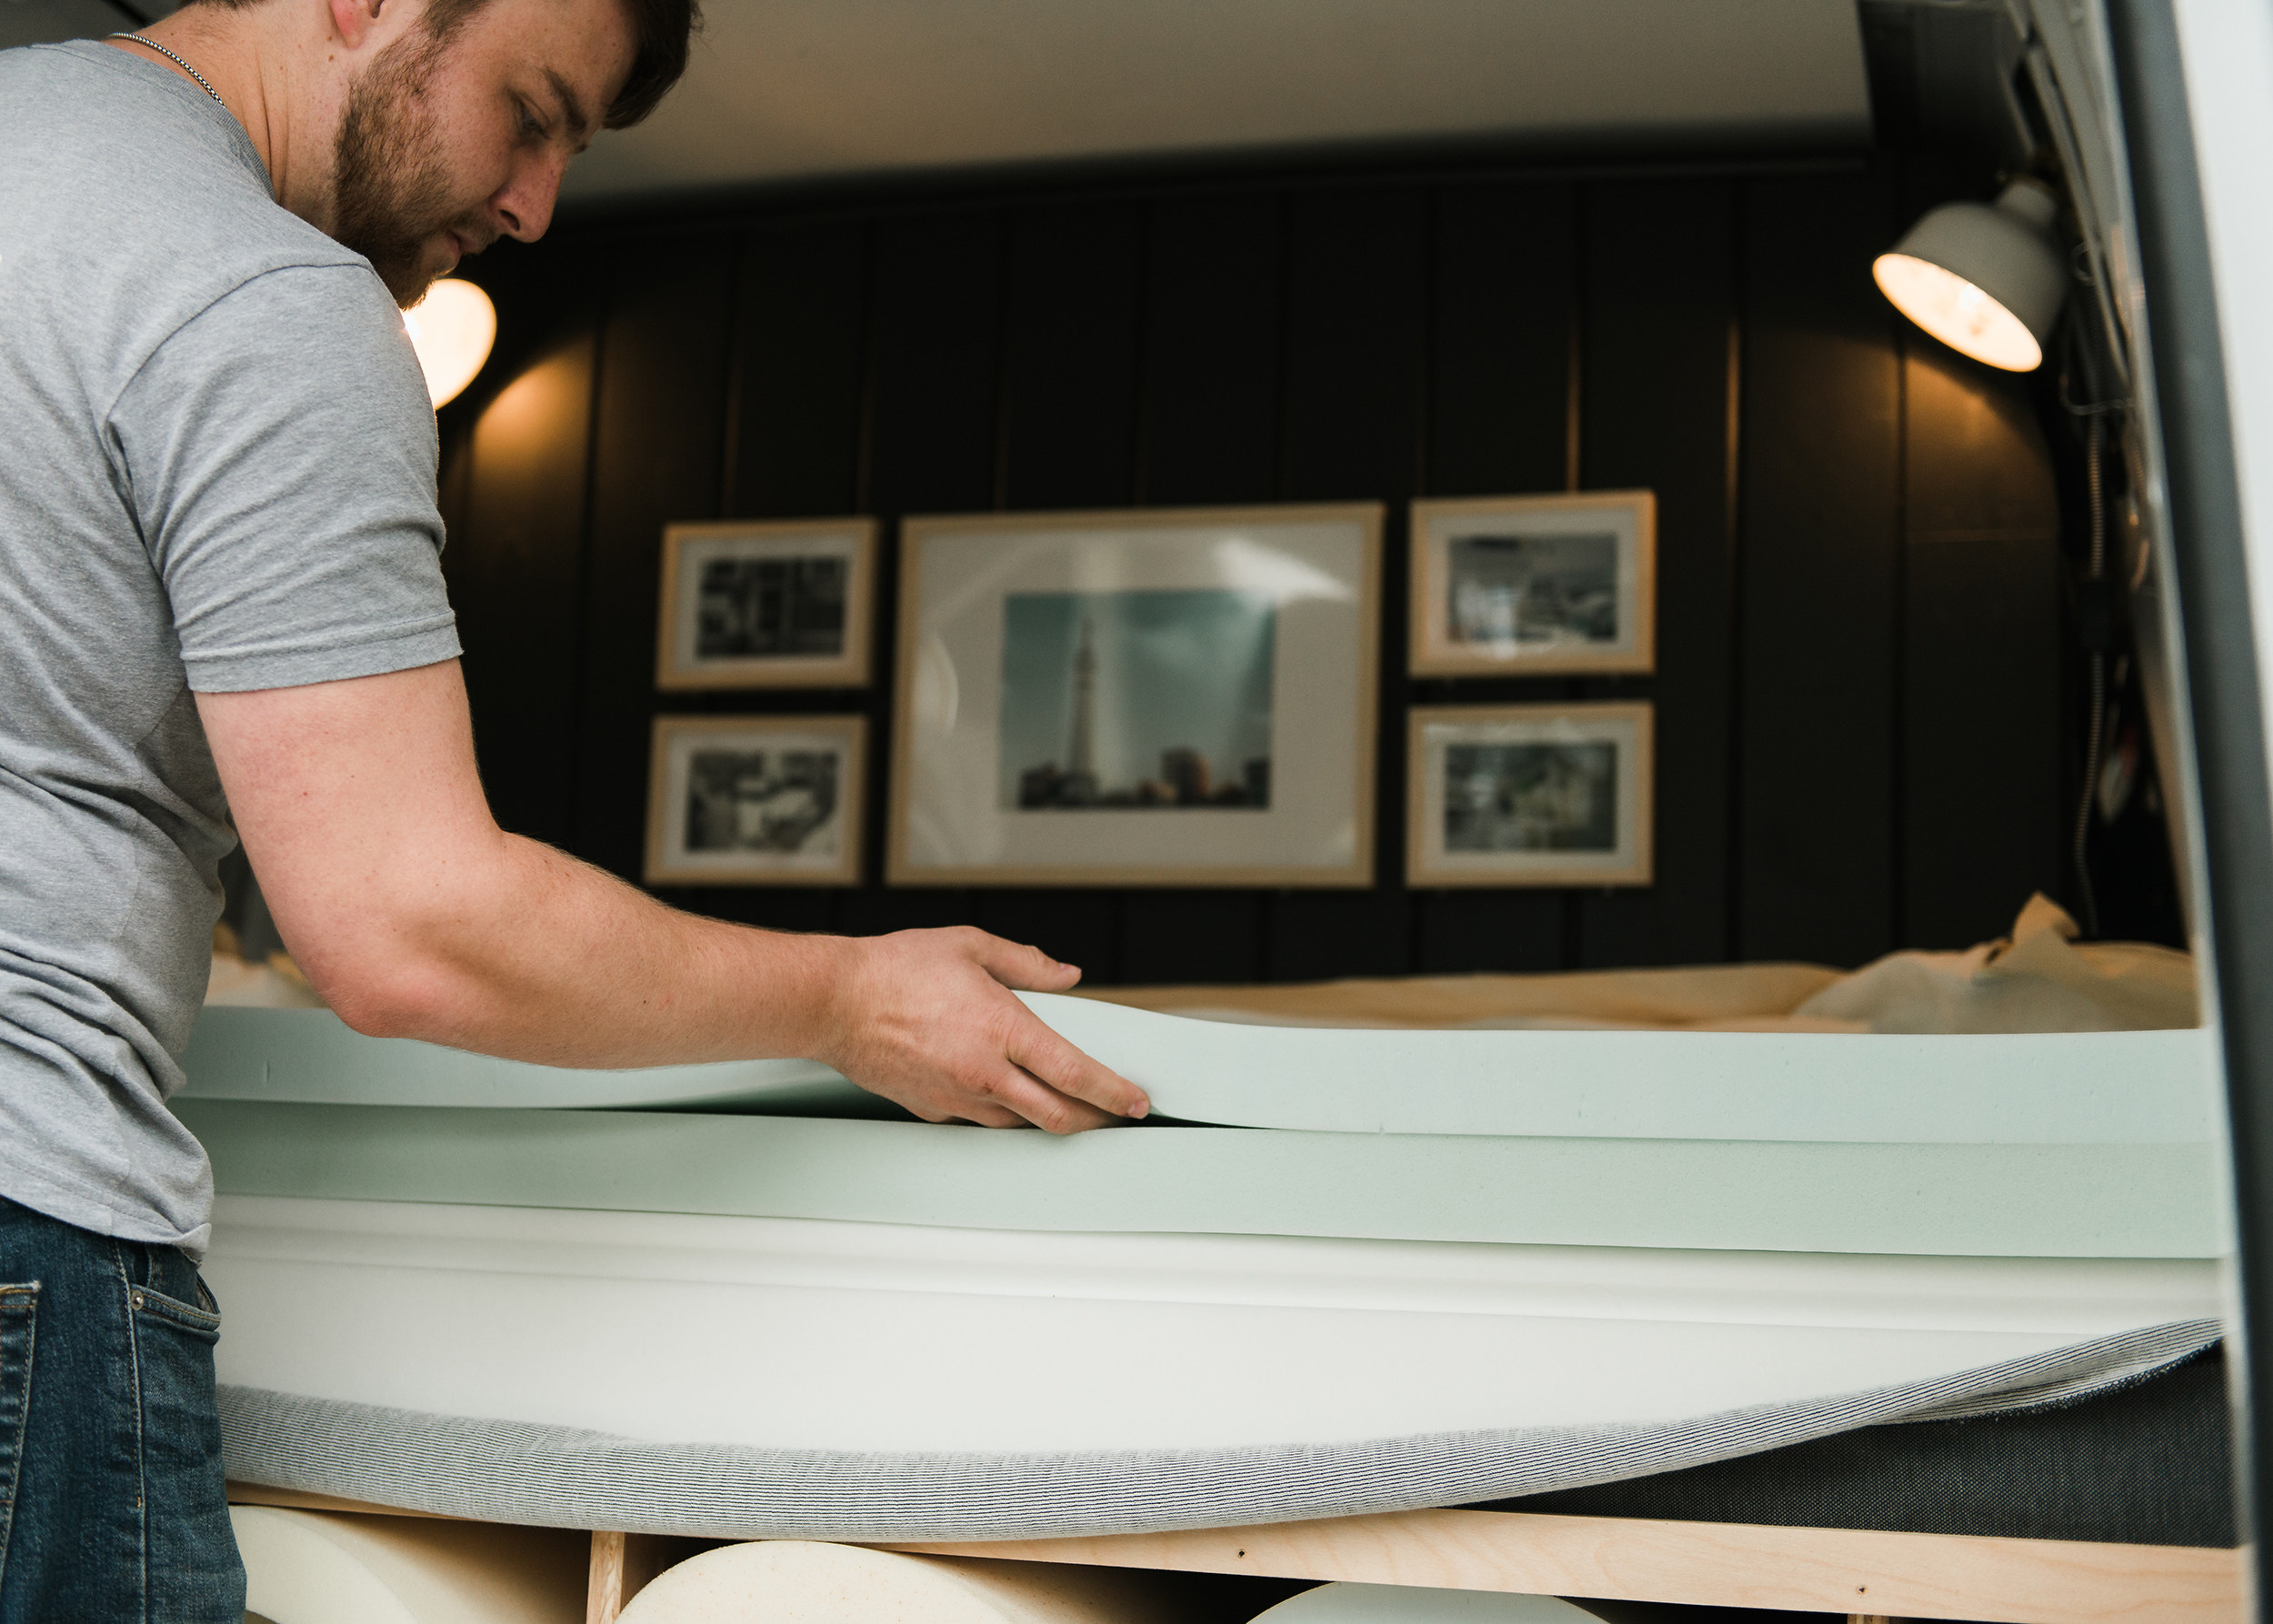 All we did was make a call and had one of the layers exchanged no problem… the best mattress I have slept on. - Sam in Fishers, IN